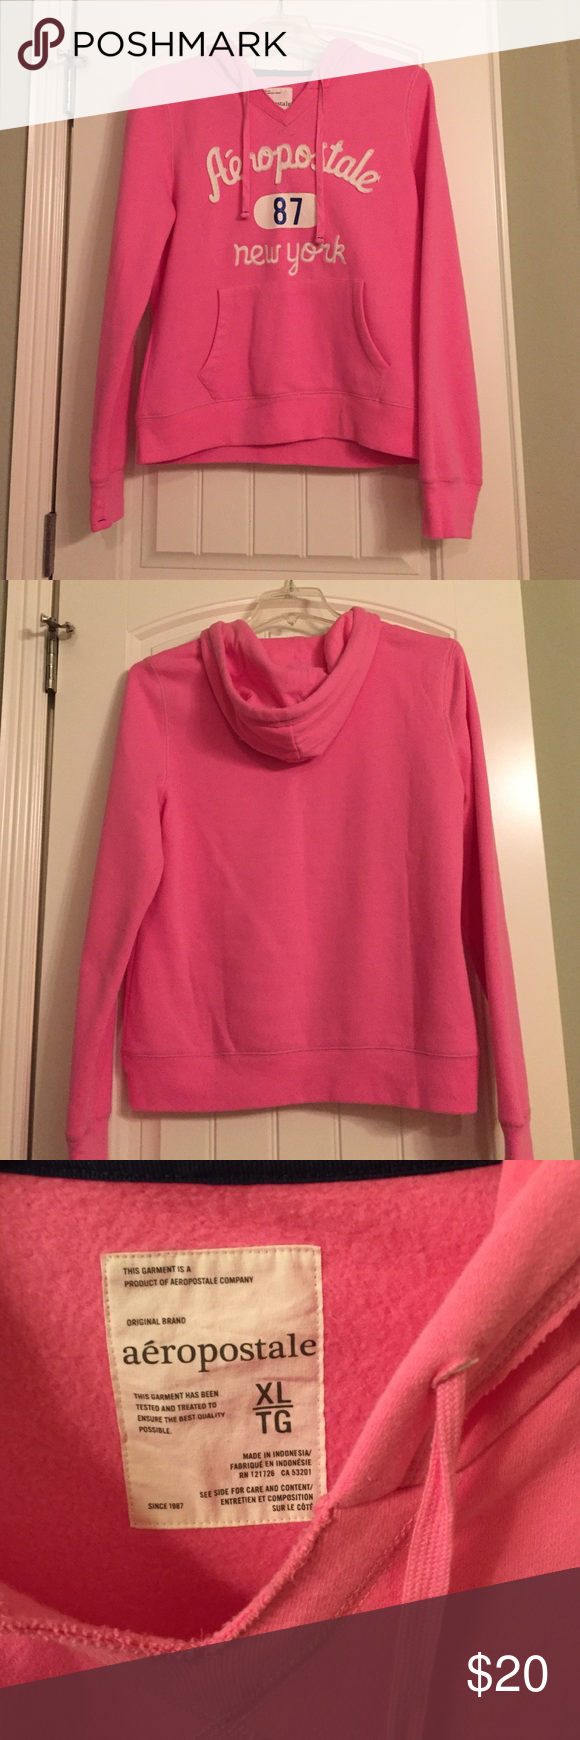 💕pink Aeropostale sweater💕 Warm Aeropostale sweatshirt, perfect for this chilly weather on its away, great for back to school.  Has front pocket.    🚫No trades please  ‼️Willing to negotiate  ‼️No smoking or pet home Aeropostale Sweaters